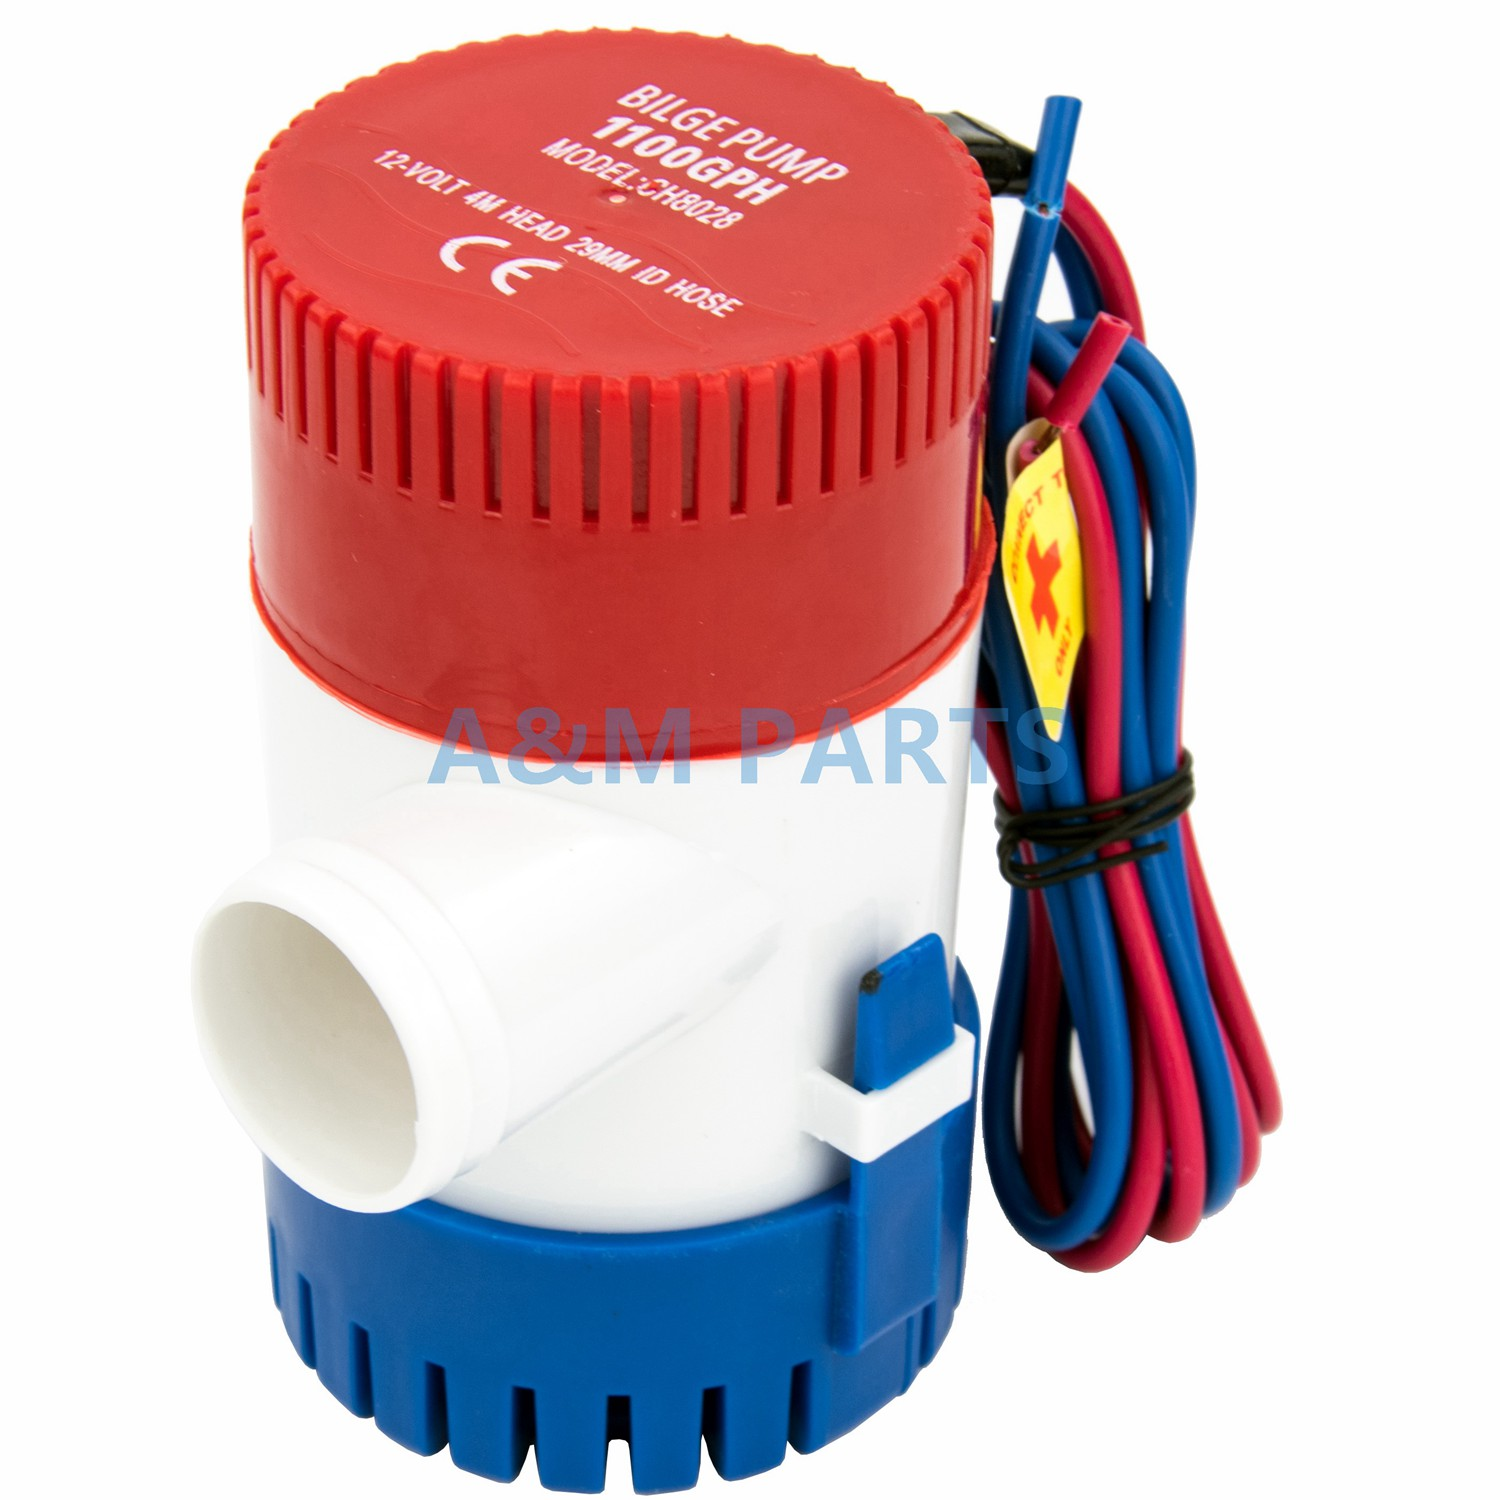 12V <font><b>1100</b></font> <font><b>GPH</b></font> Boat/Marine <font><b>Bilge</b></font> <font><b>Pump</b></font> Submersible Water <font><b>Pump</b></font> for Yacht image